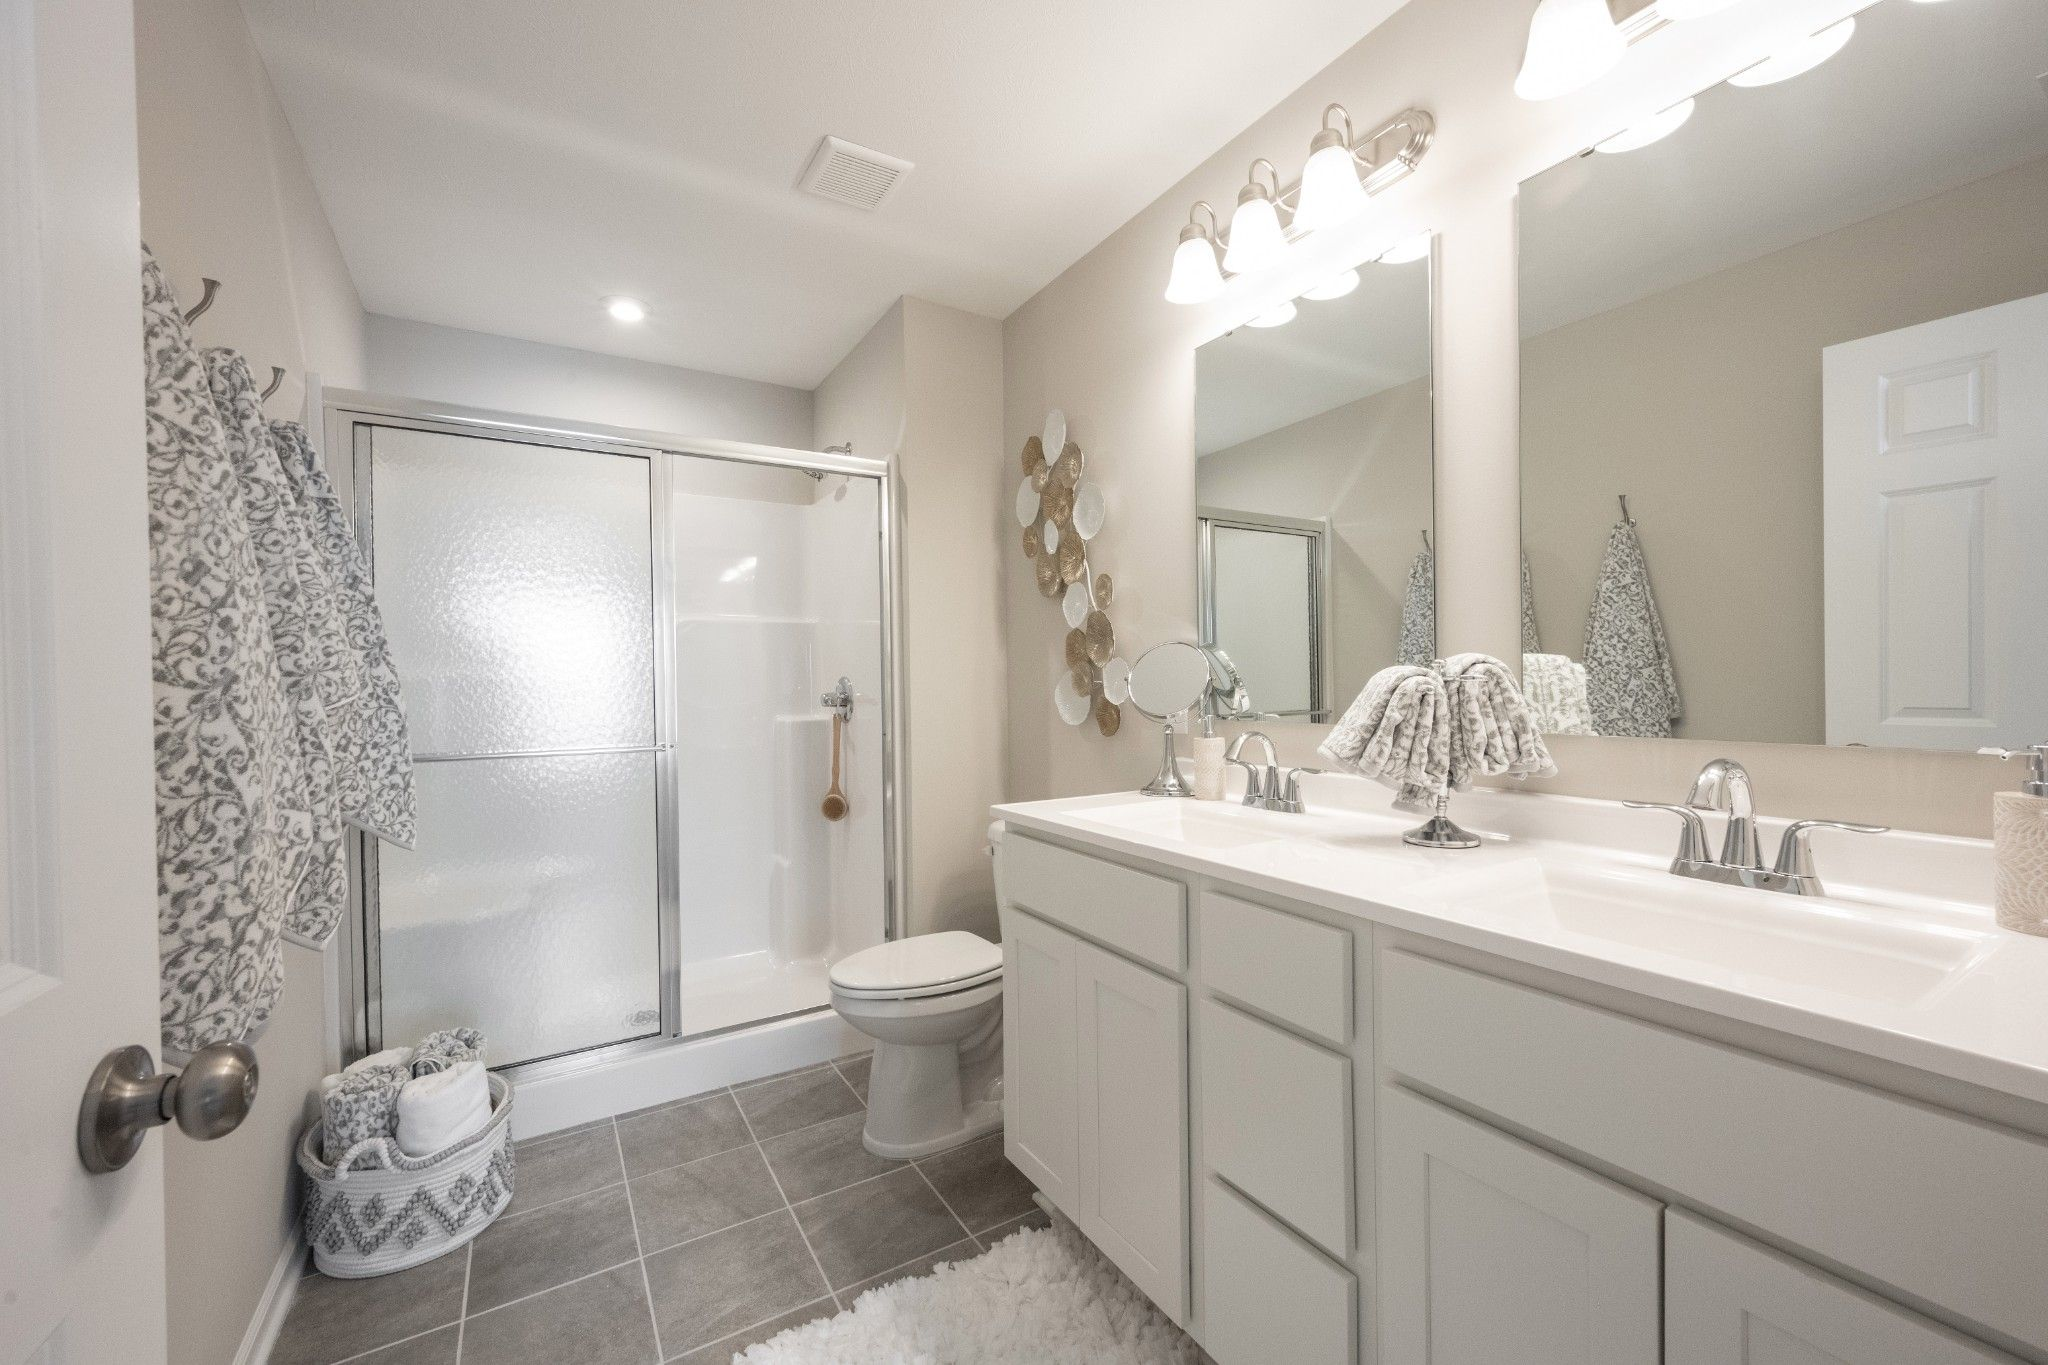 Bathroom featured in the Keaton By Olthof Homes in Indianapolis, IN